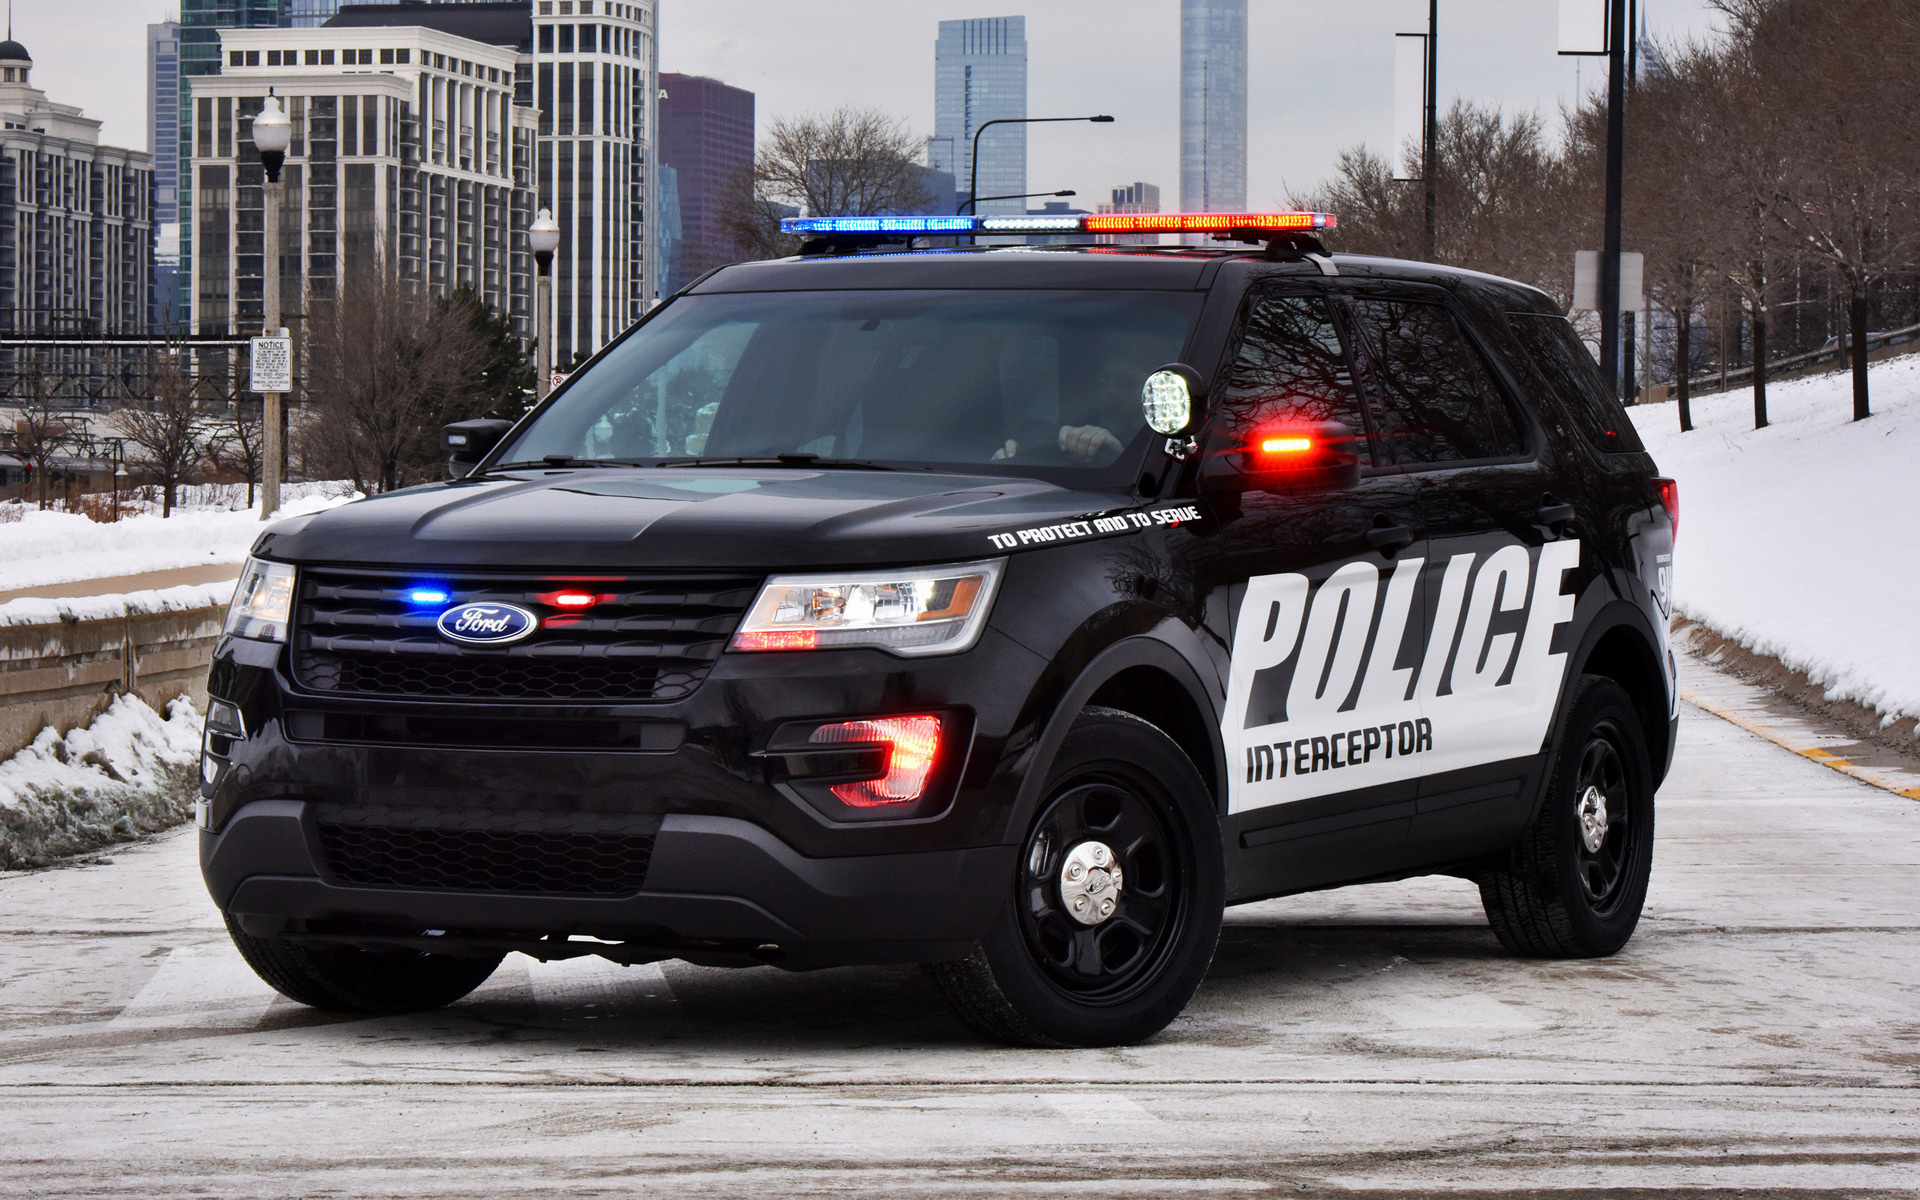 2016 Ford Police Interceptor Utility Wallpapers And Hd